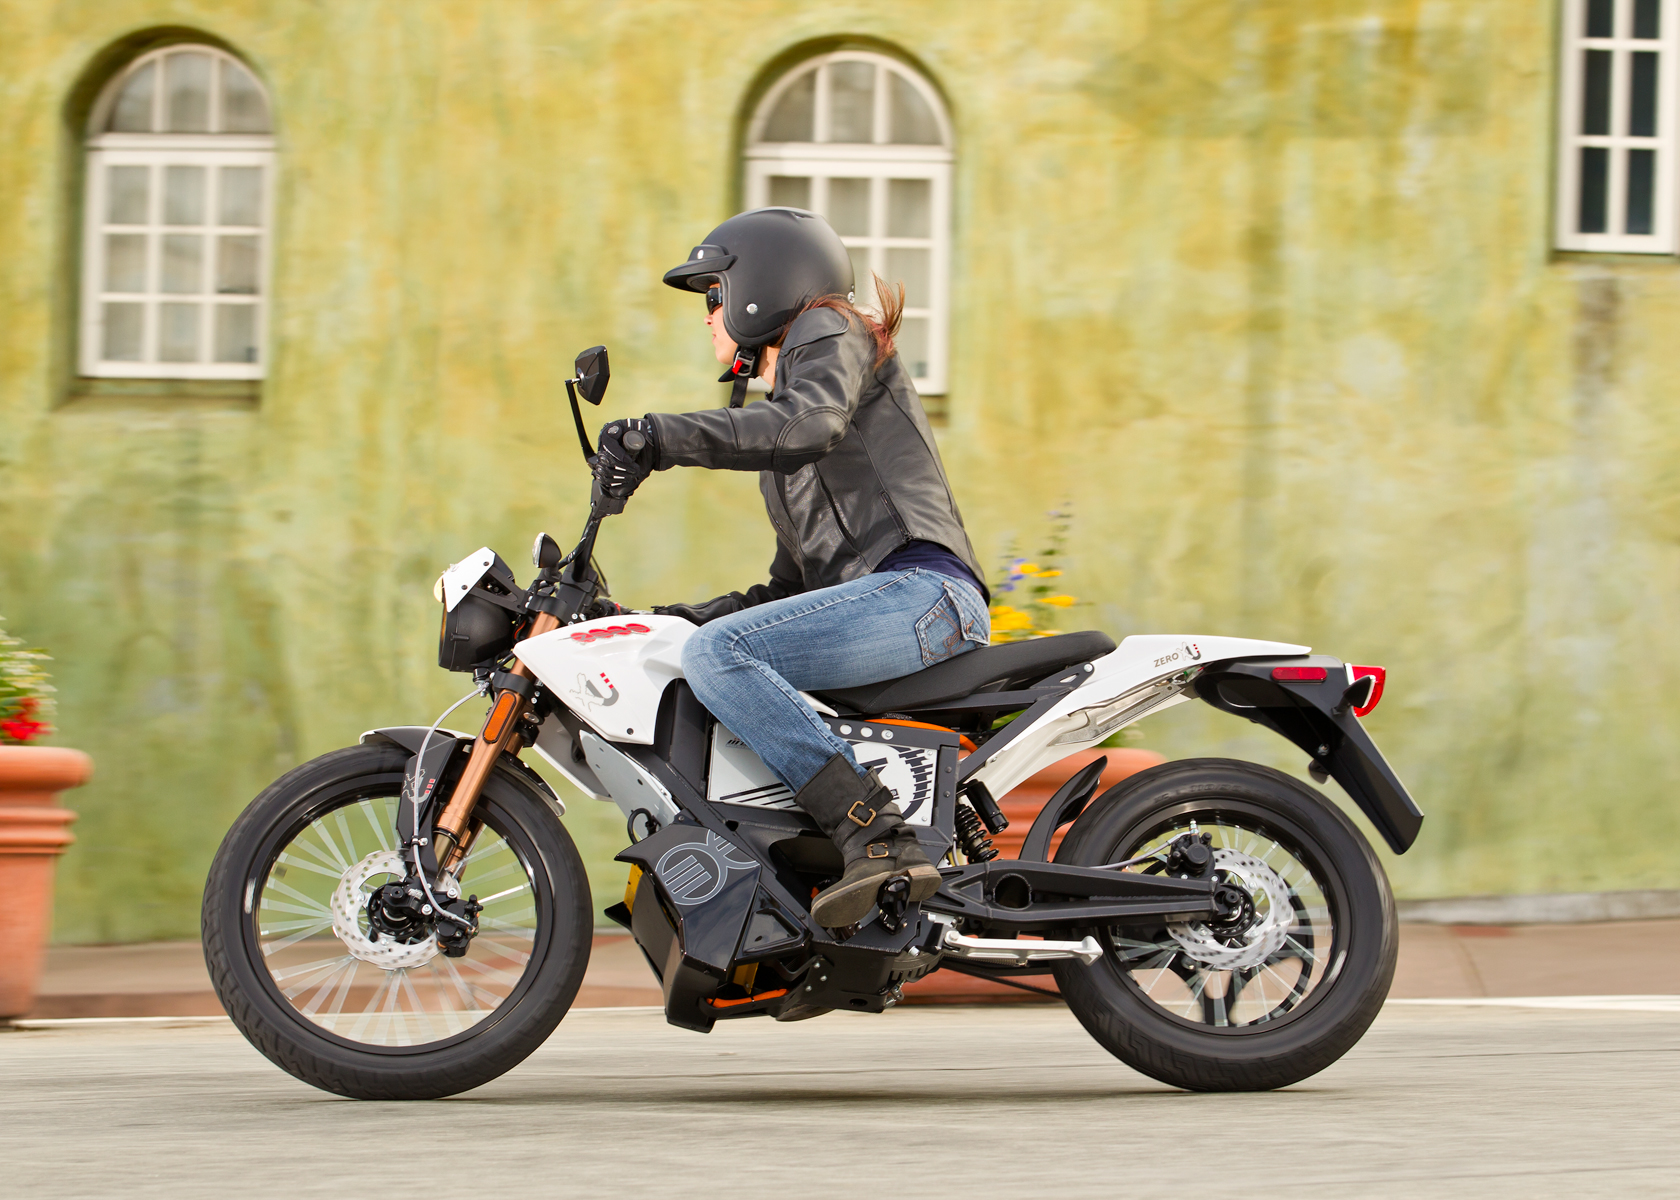 2012 Zero XU Electric Motorcycle: Capitola Village